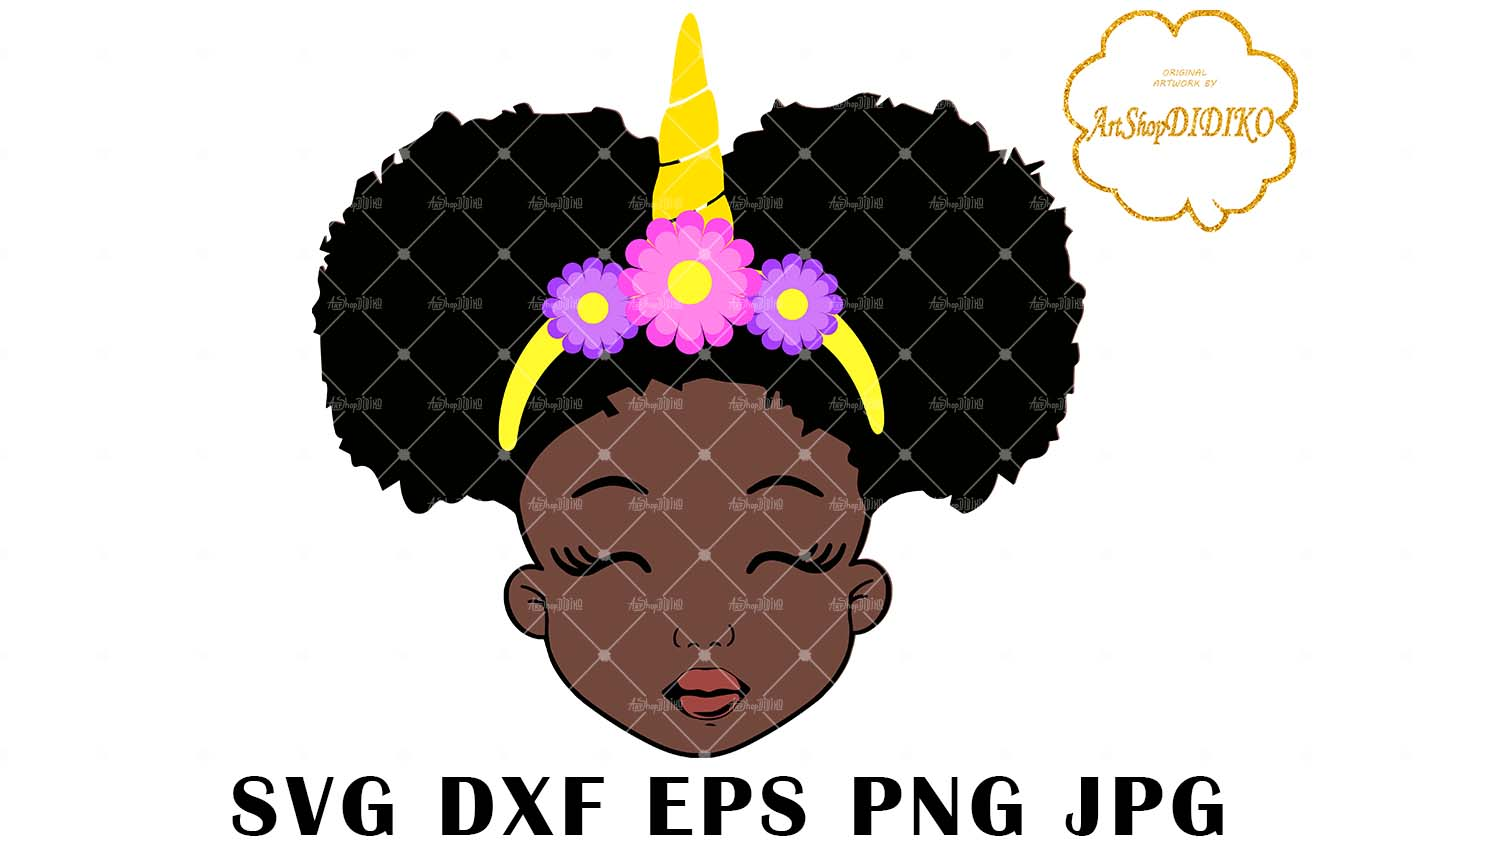 Download Cute Afro Girl Unicorn SVG, Afro Puff Girl SVG, Afro Kid ...